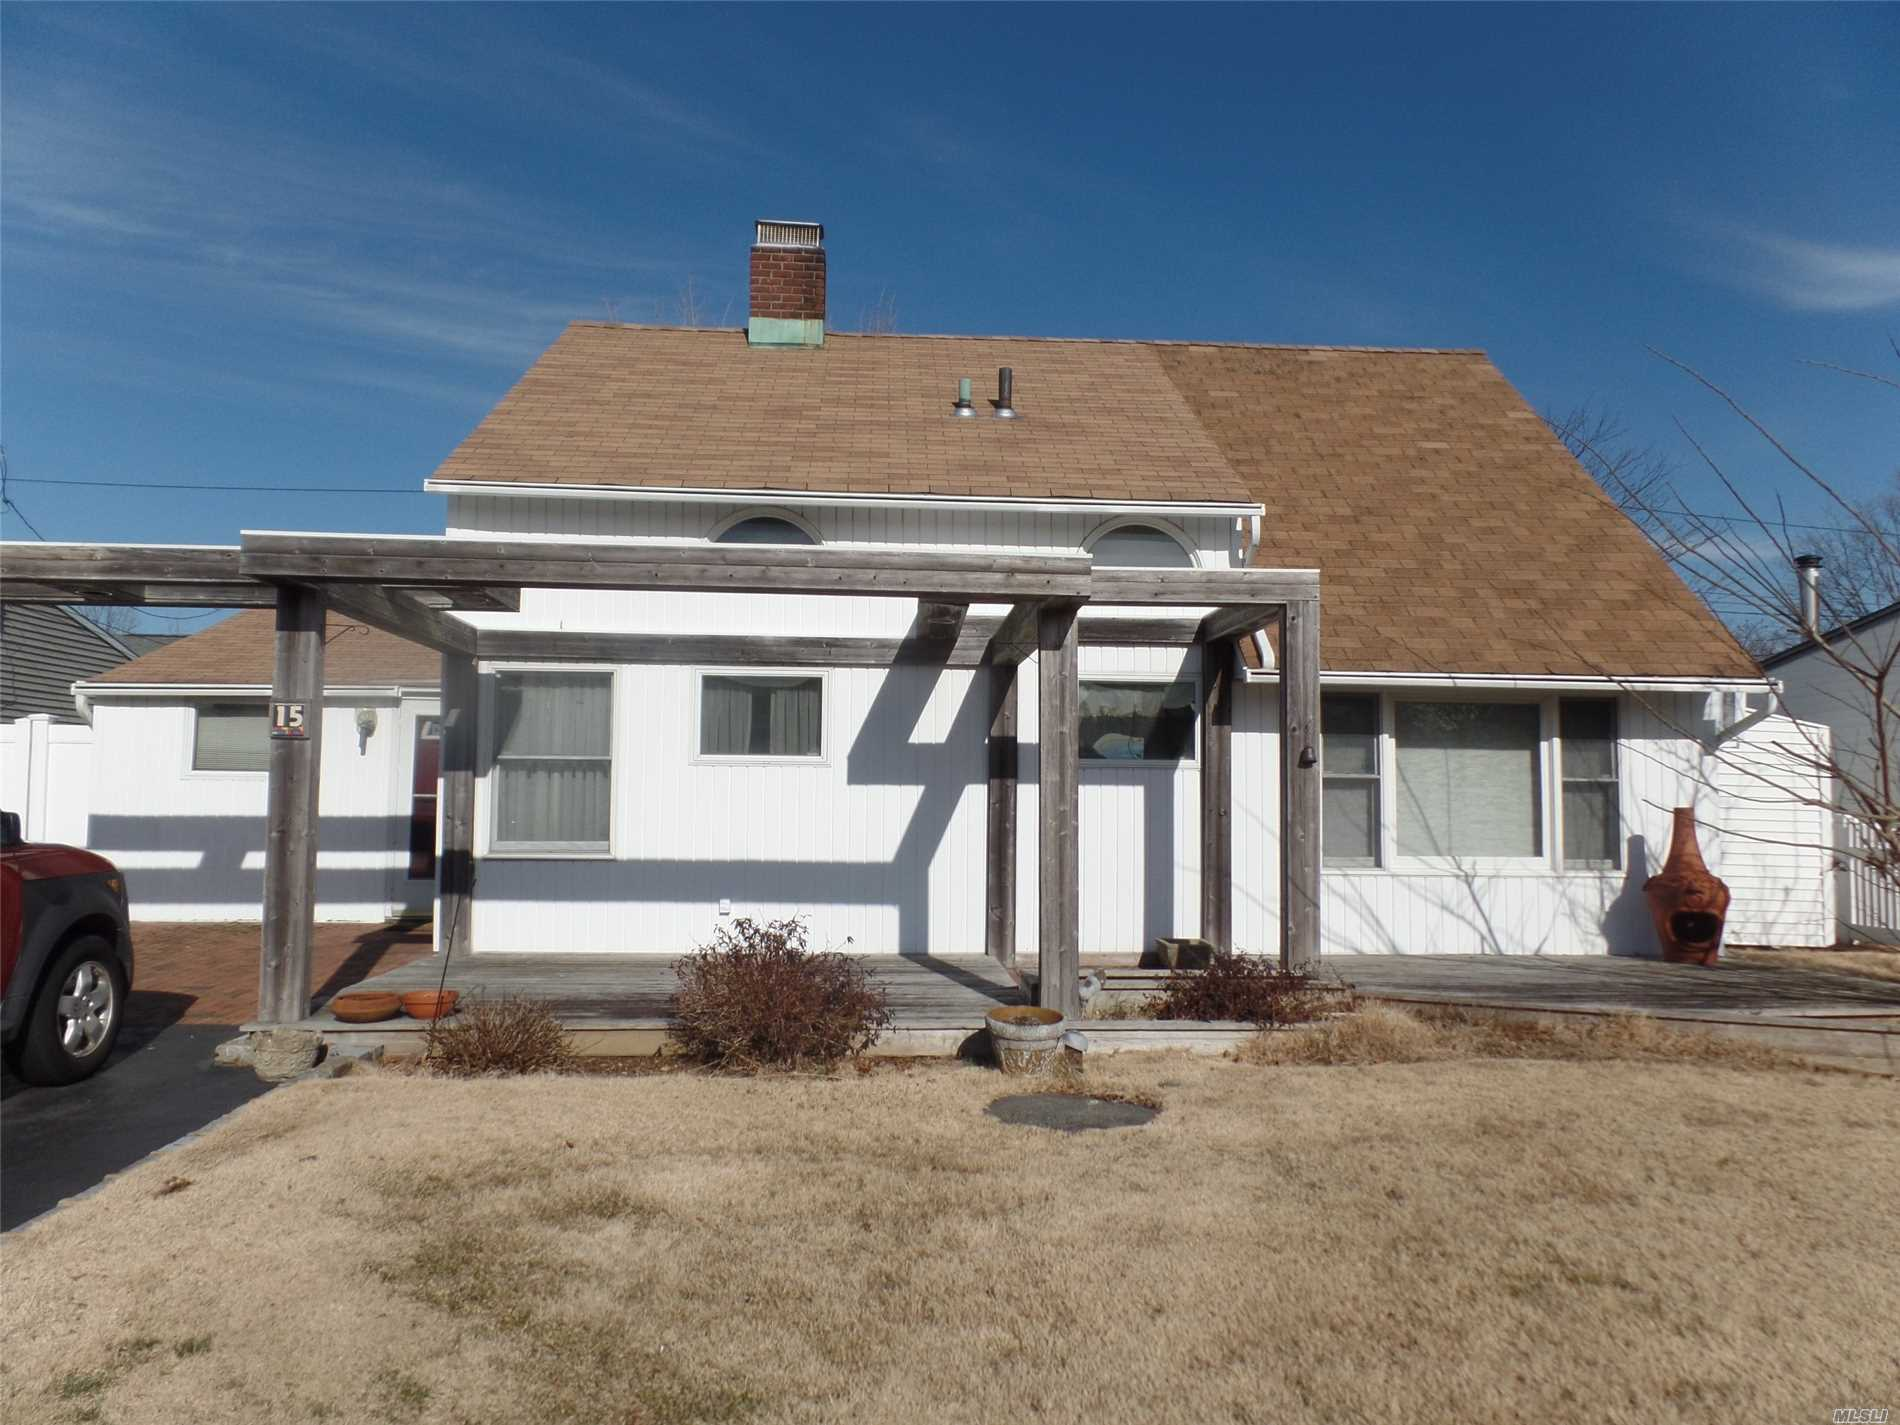 Rear Extended Expanded Ranch In The Desirable D Section Boasts An Eik, Formal Dining Room, Living Room, Huge Master Bedroom On First Floor. 3 Additional Bedrooms And 2 Full Baths Sitting On A Well Manicured Property. Taxes With Star Under $10, 000. Above Ground Oil Tank